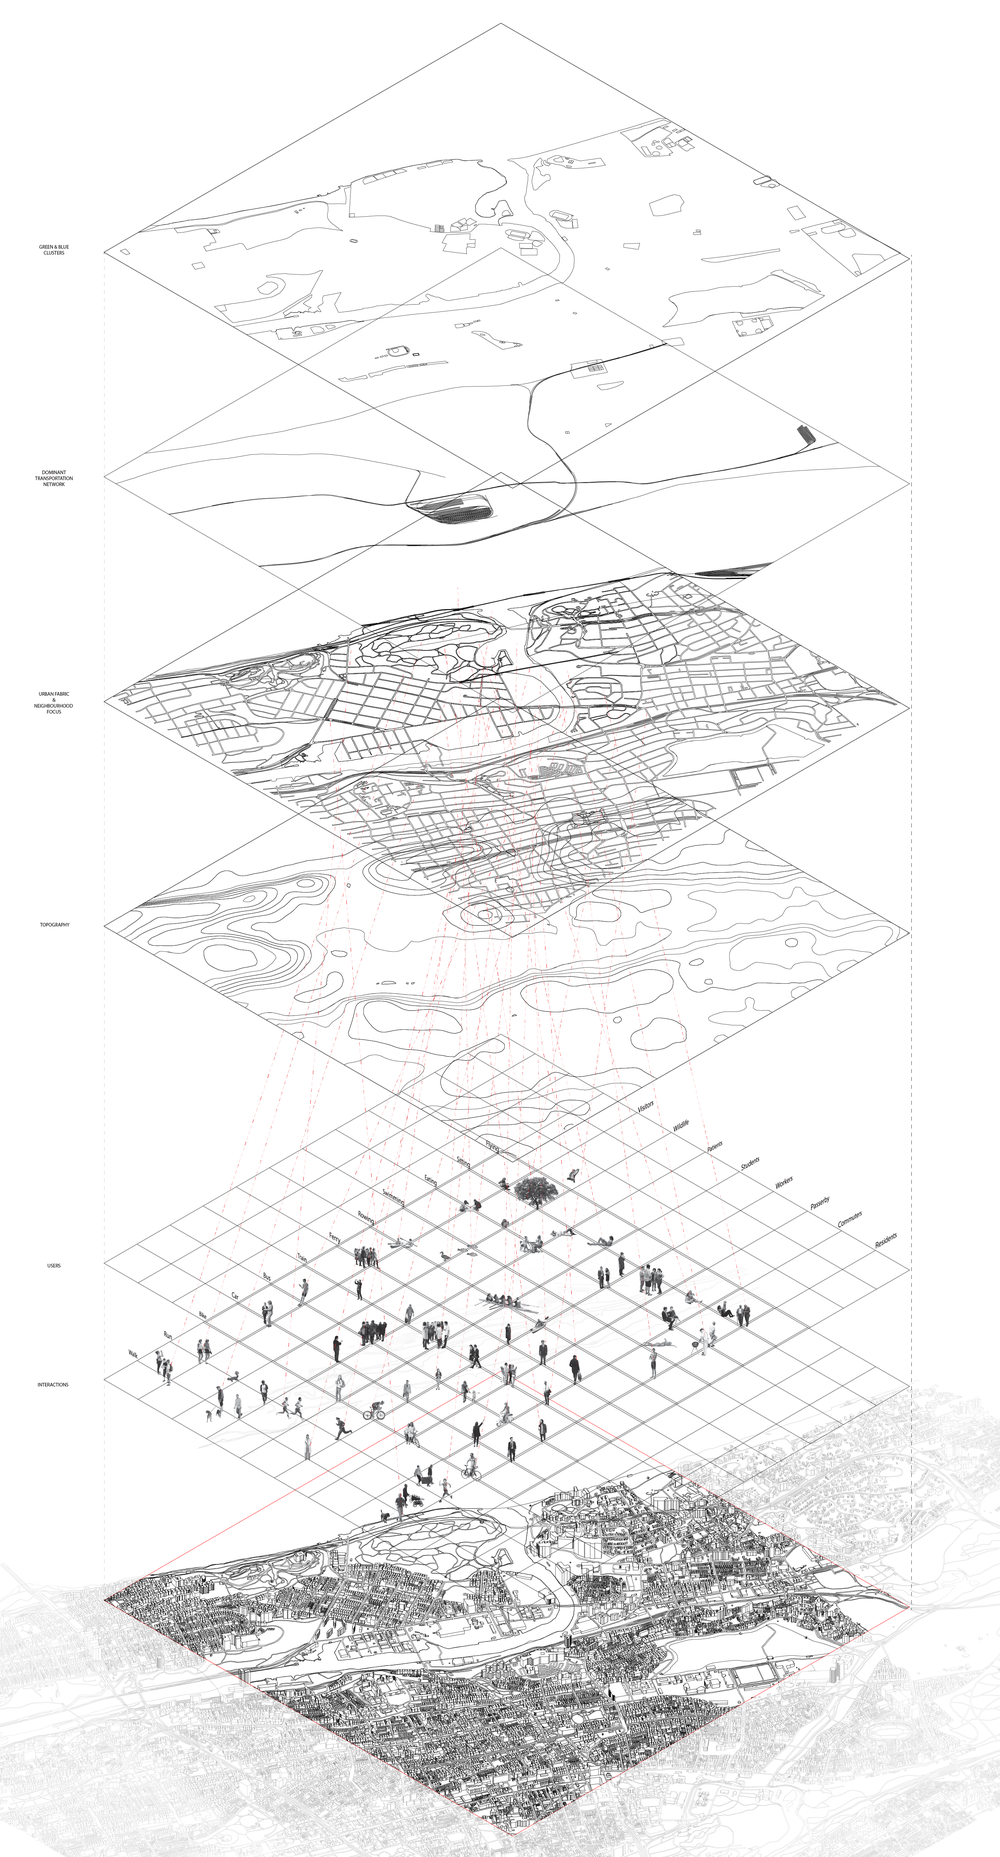 Decoding Marble-Hill Inwood - Exploding Axonometric Site Study